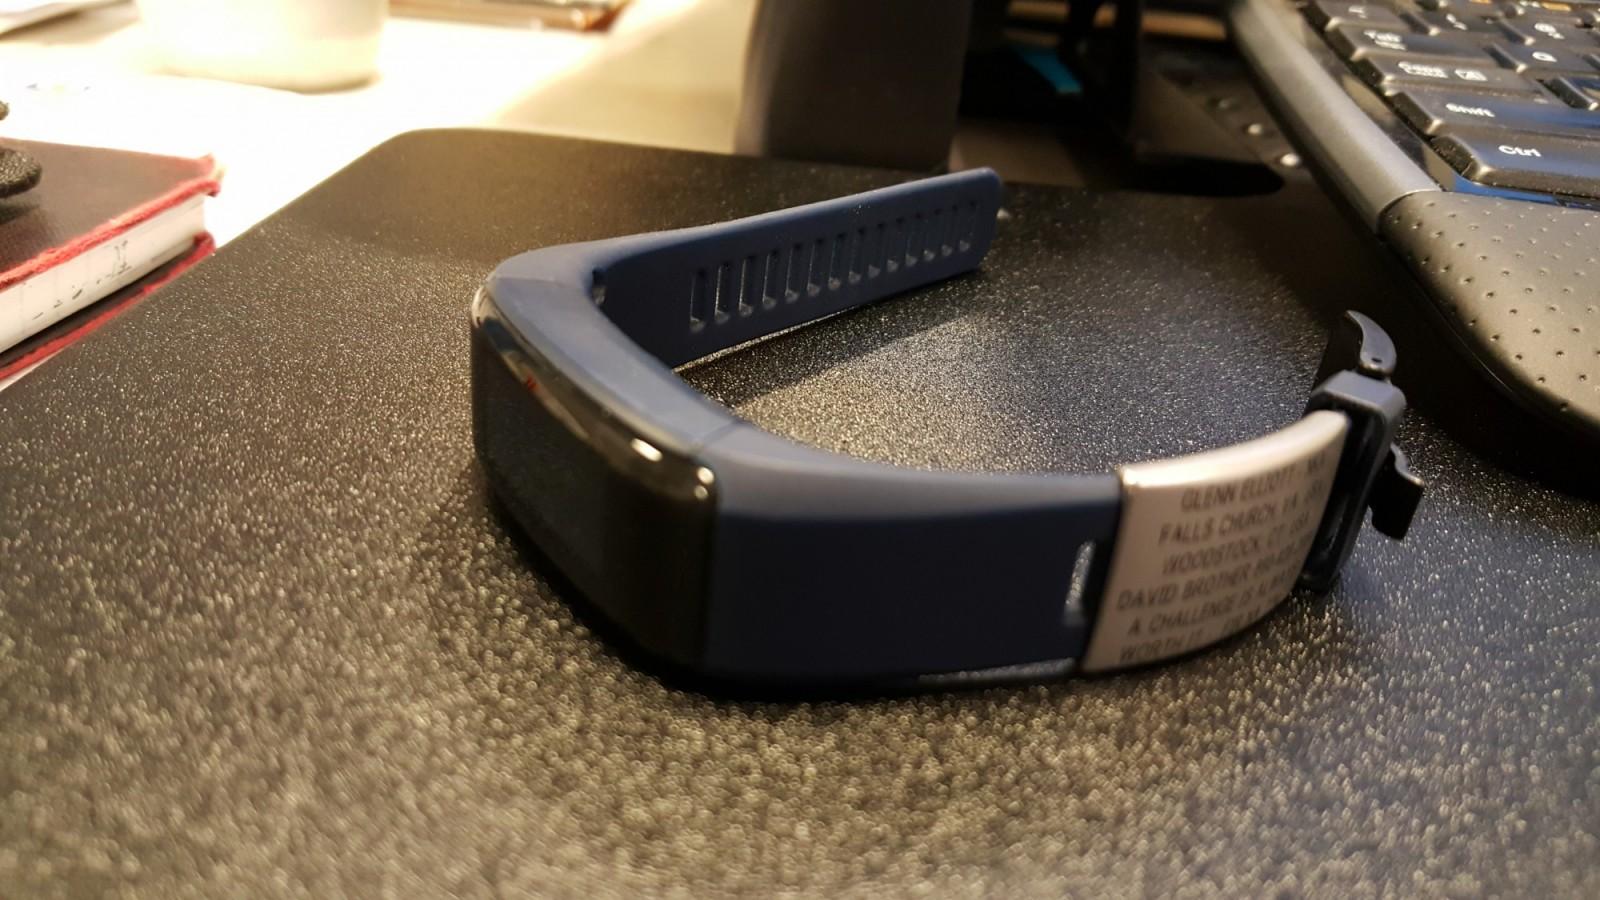 First look at the new Garmin Vivosmart HR with optical